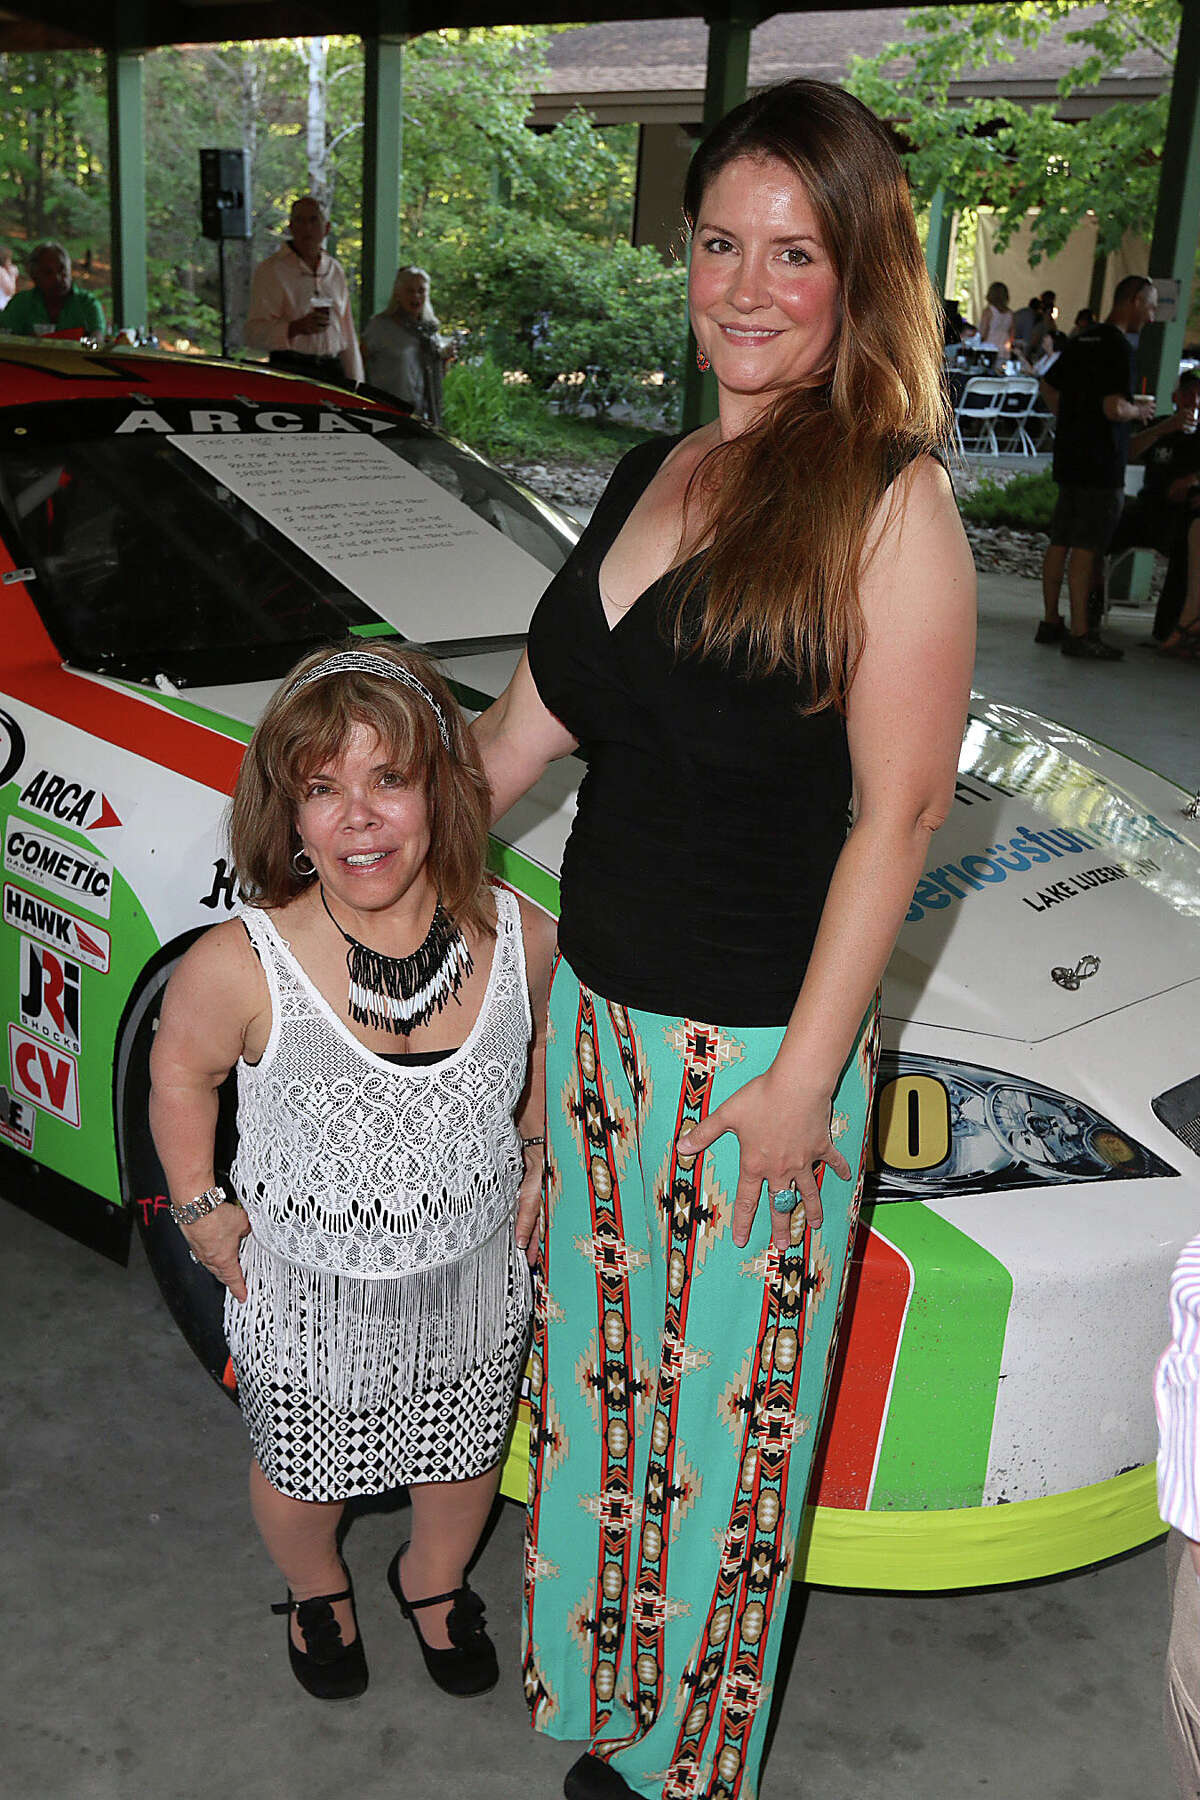 Were you Seen at the Double H Ranch Annual Gala at the Great Escape in Queensbury on Friday, June 27, 2014?